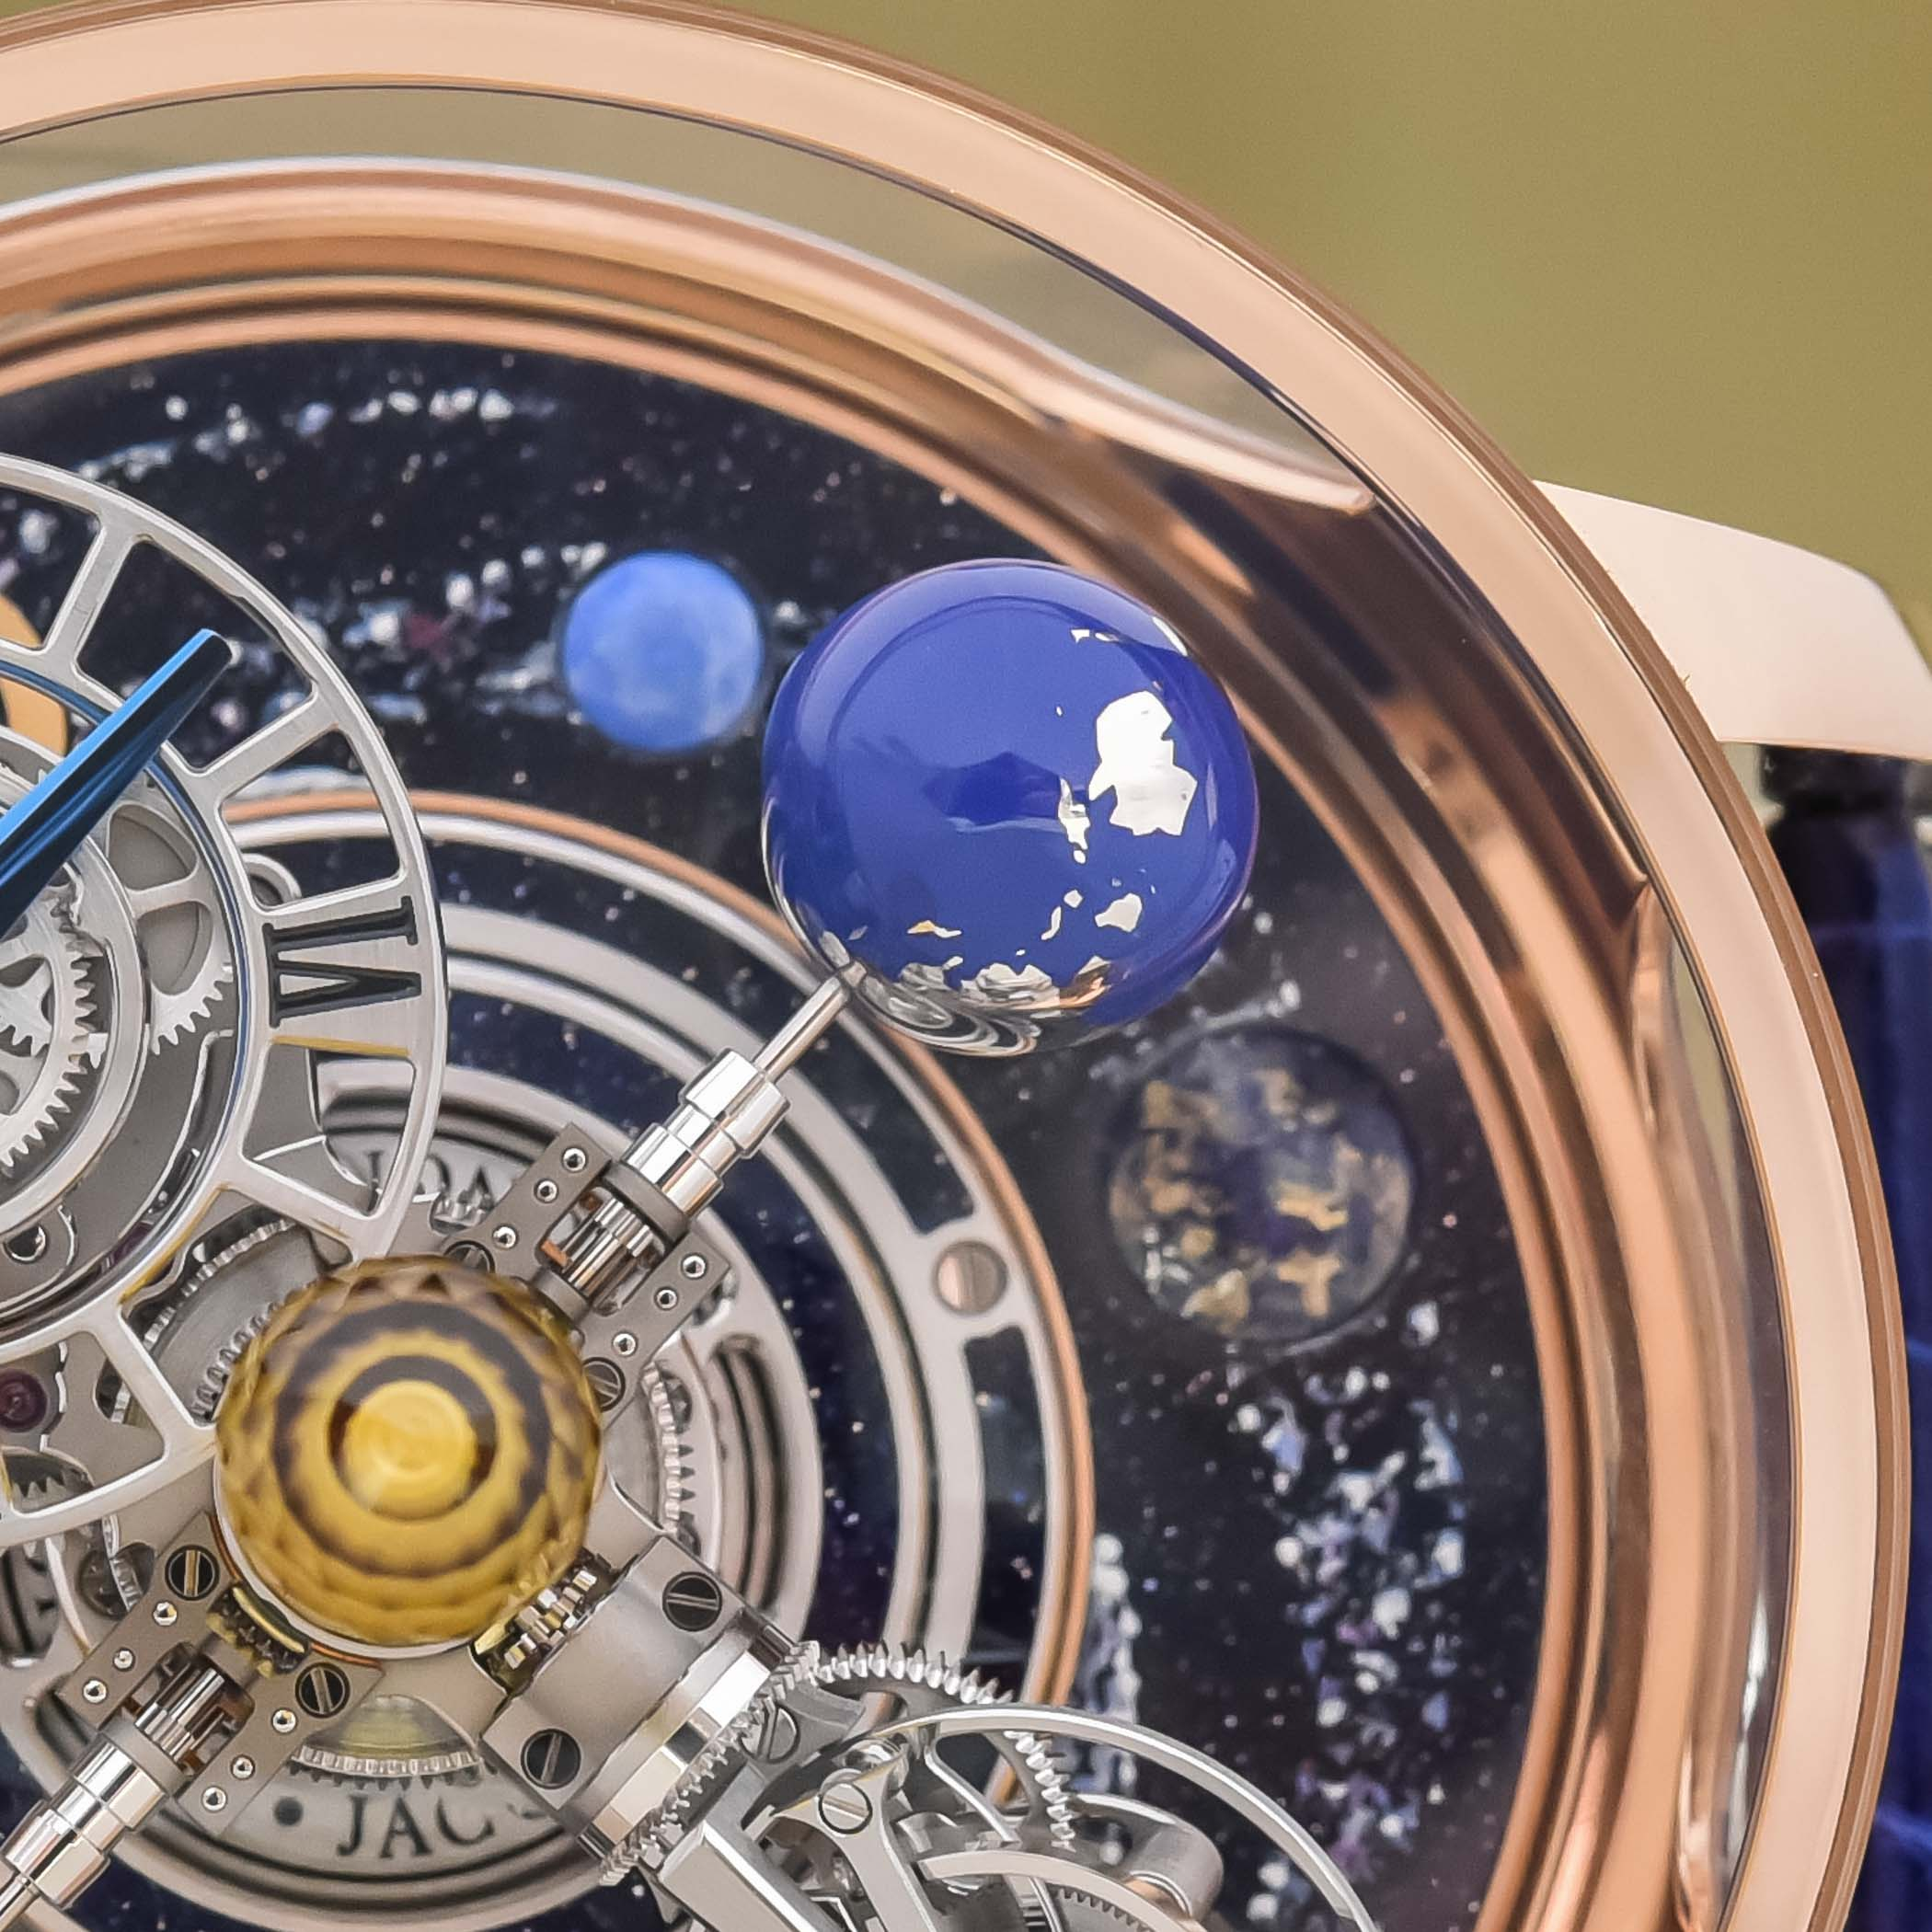 Jacob & Co Astronomia Tourbillon Typhoon